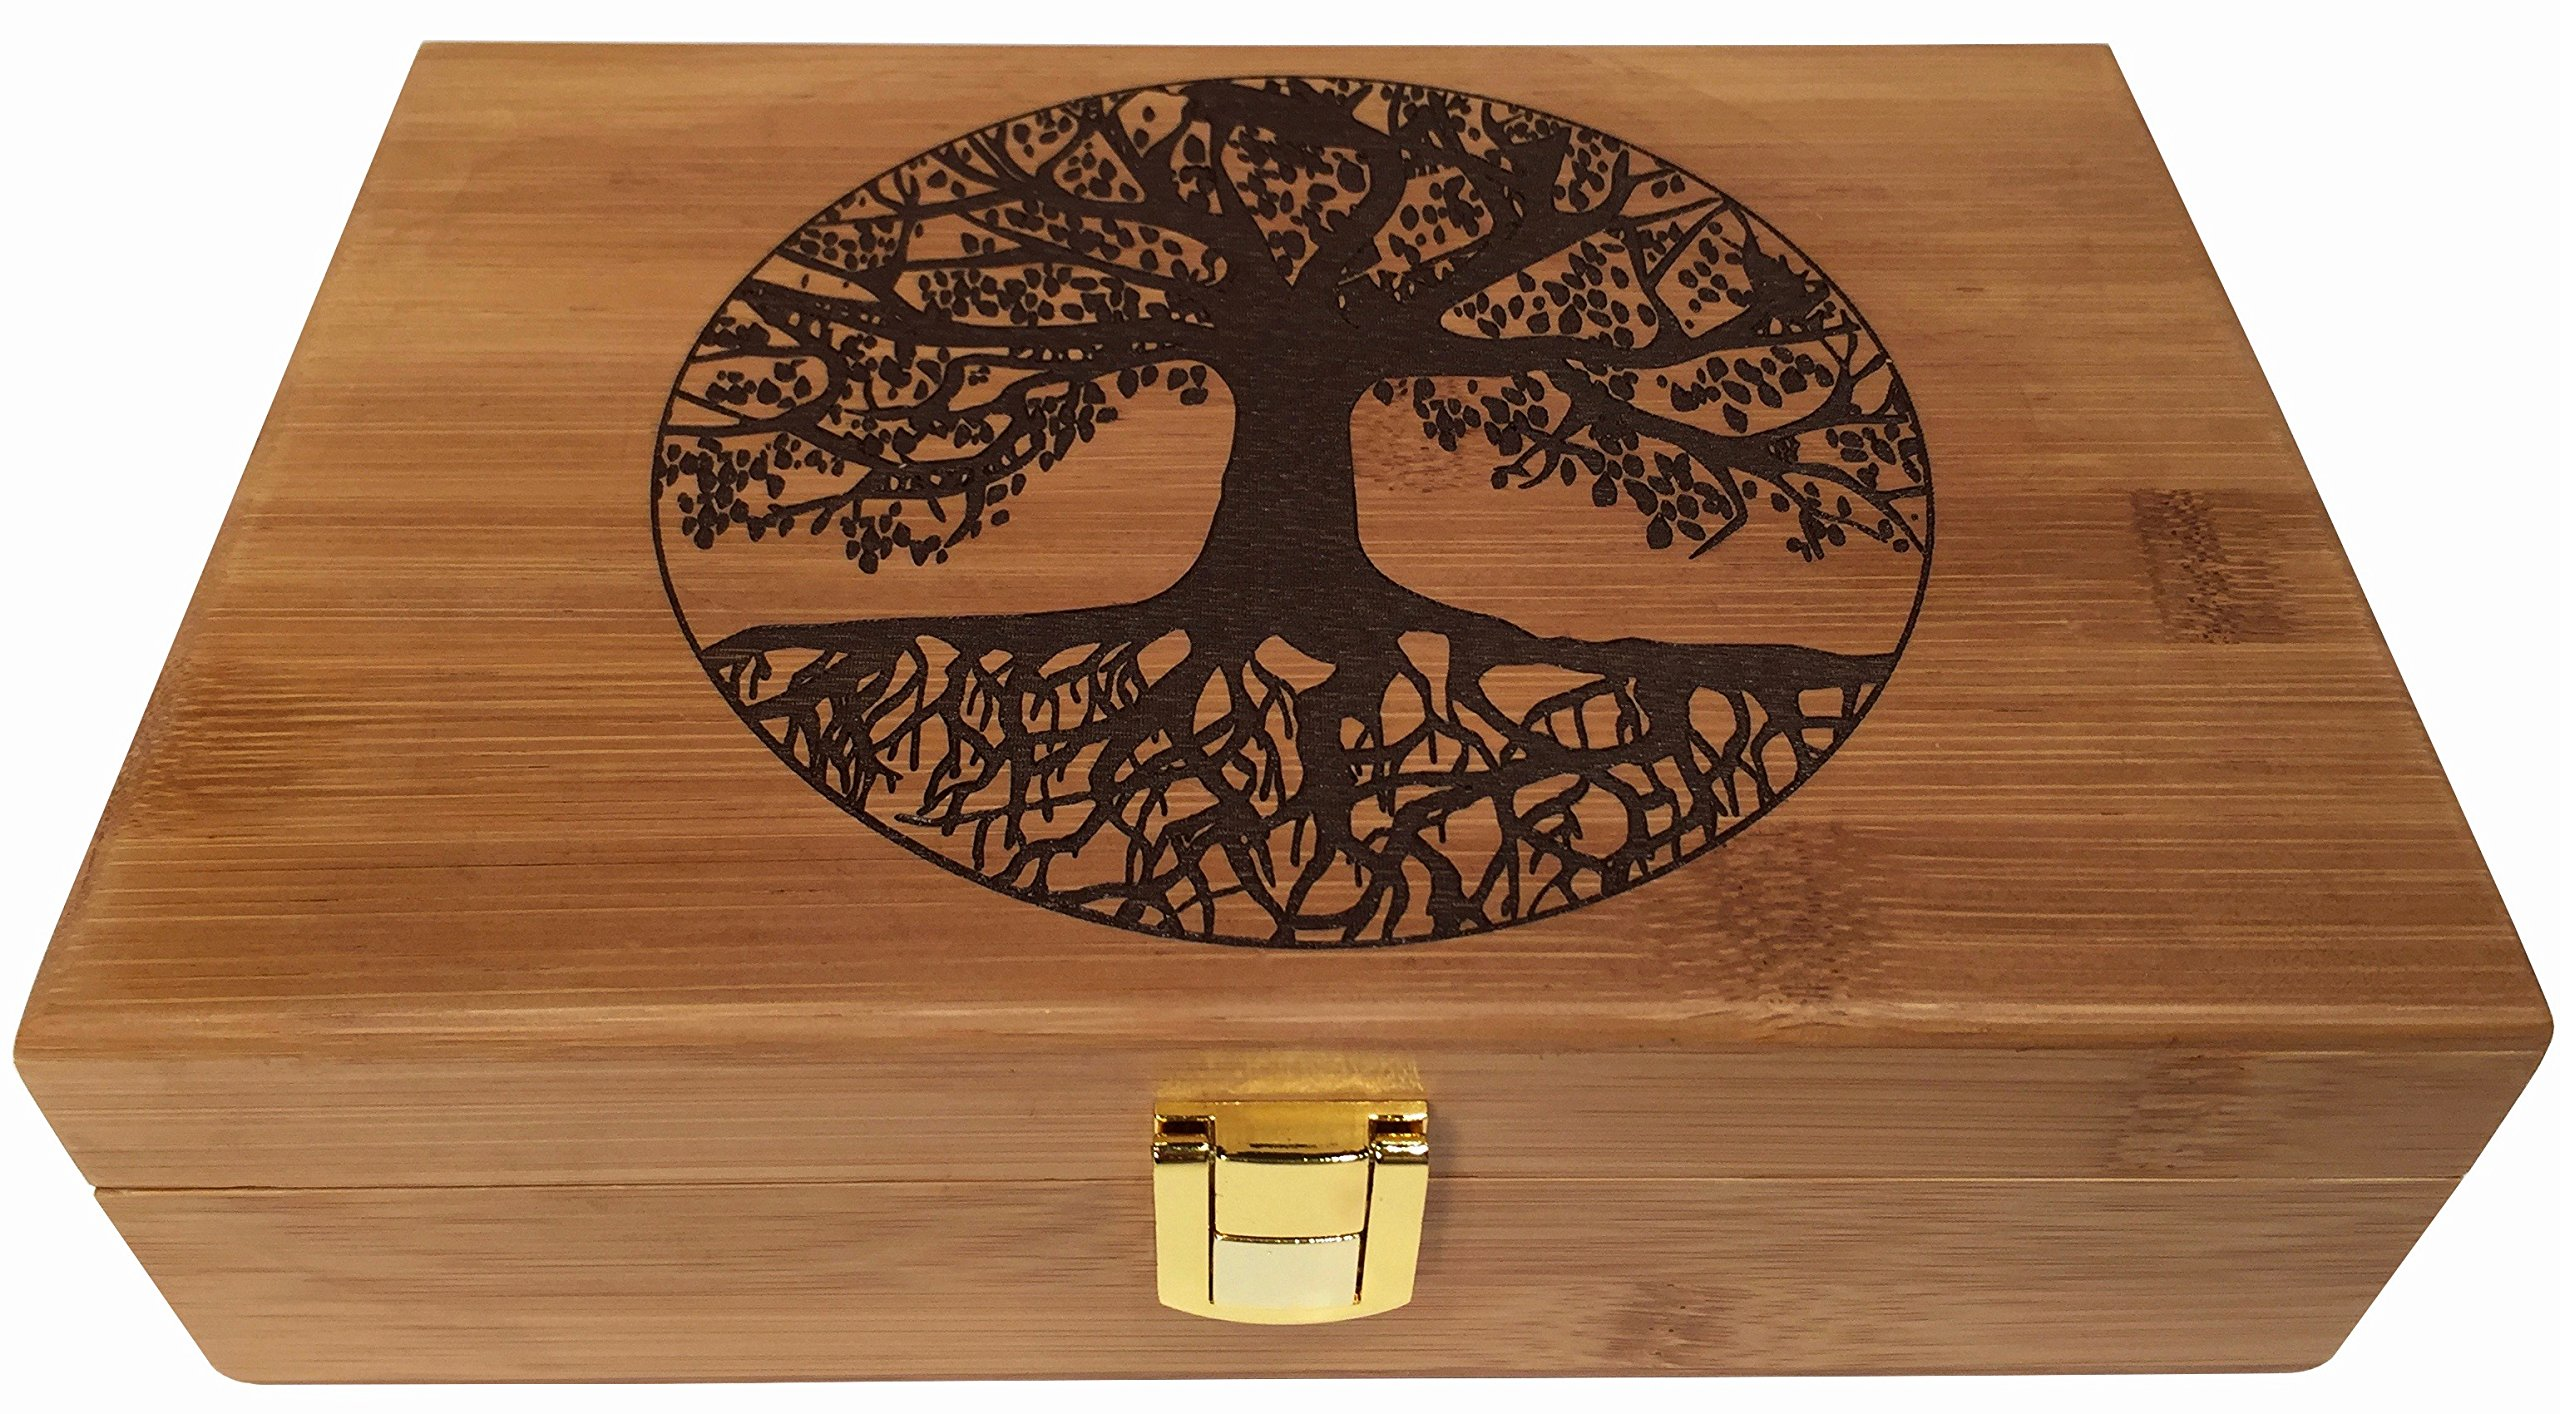 Blake & Lake Tree of Life Wood Stash Box - Wooden Stash Boxes Engraved Tree Design - Latch Box and Locking Hinge Decorative Wooden Boxes with Lid (Tree of Life)